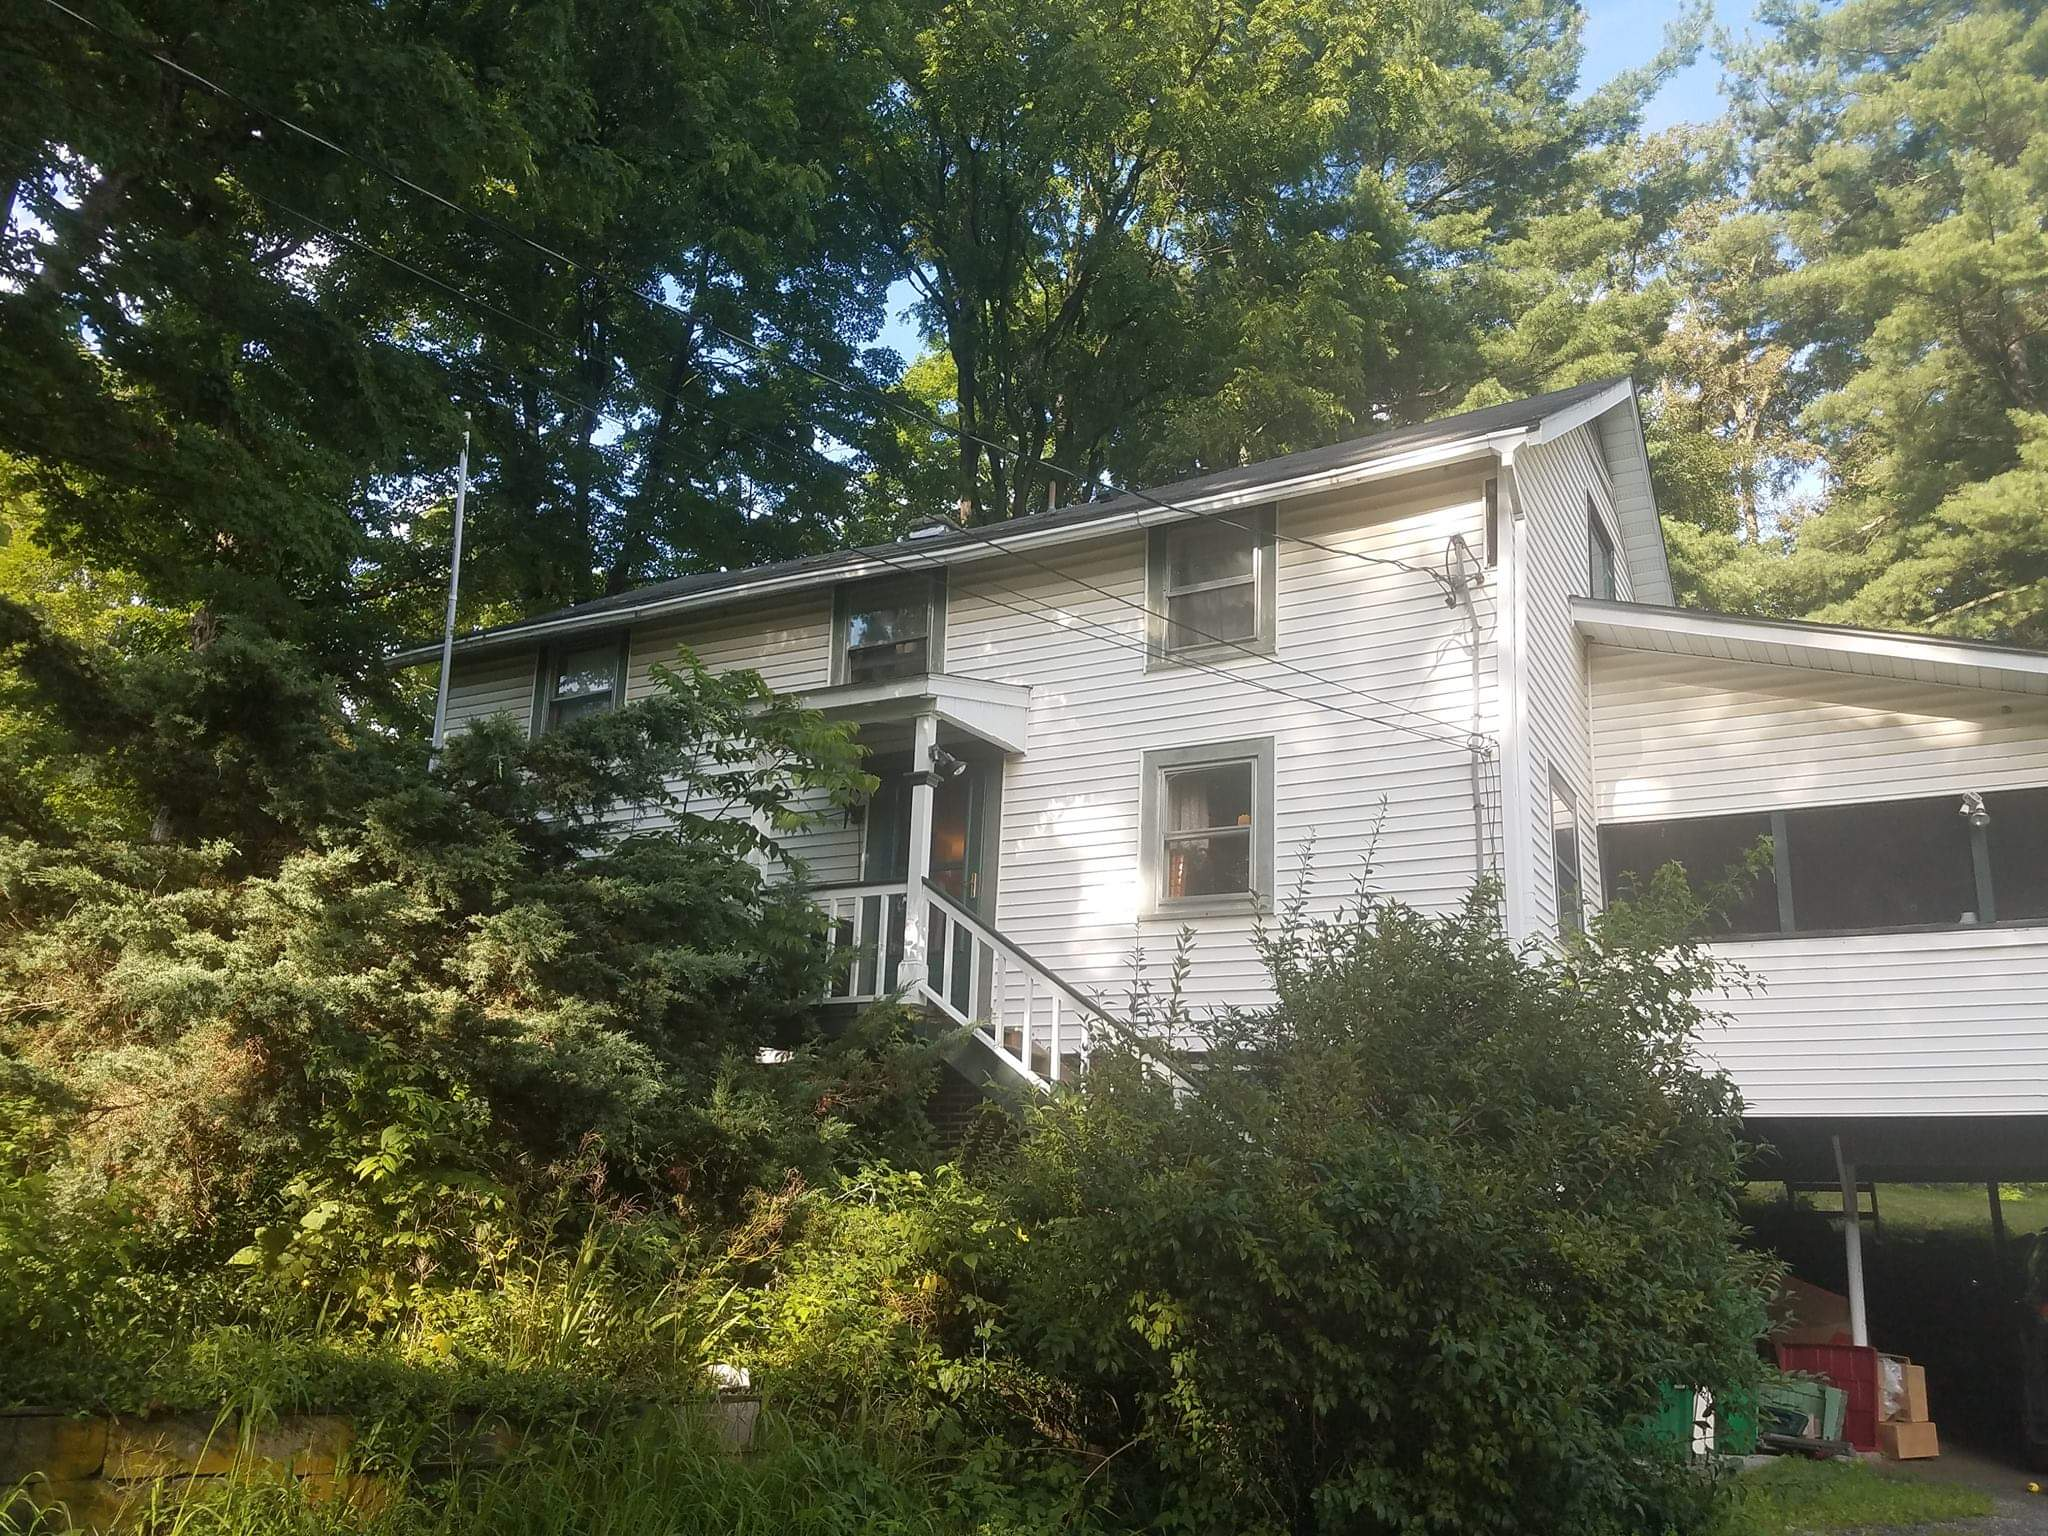 3 BR house for Rent Pleasant Valley NY